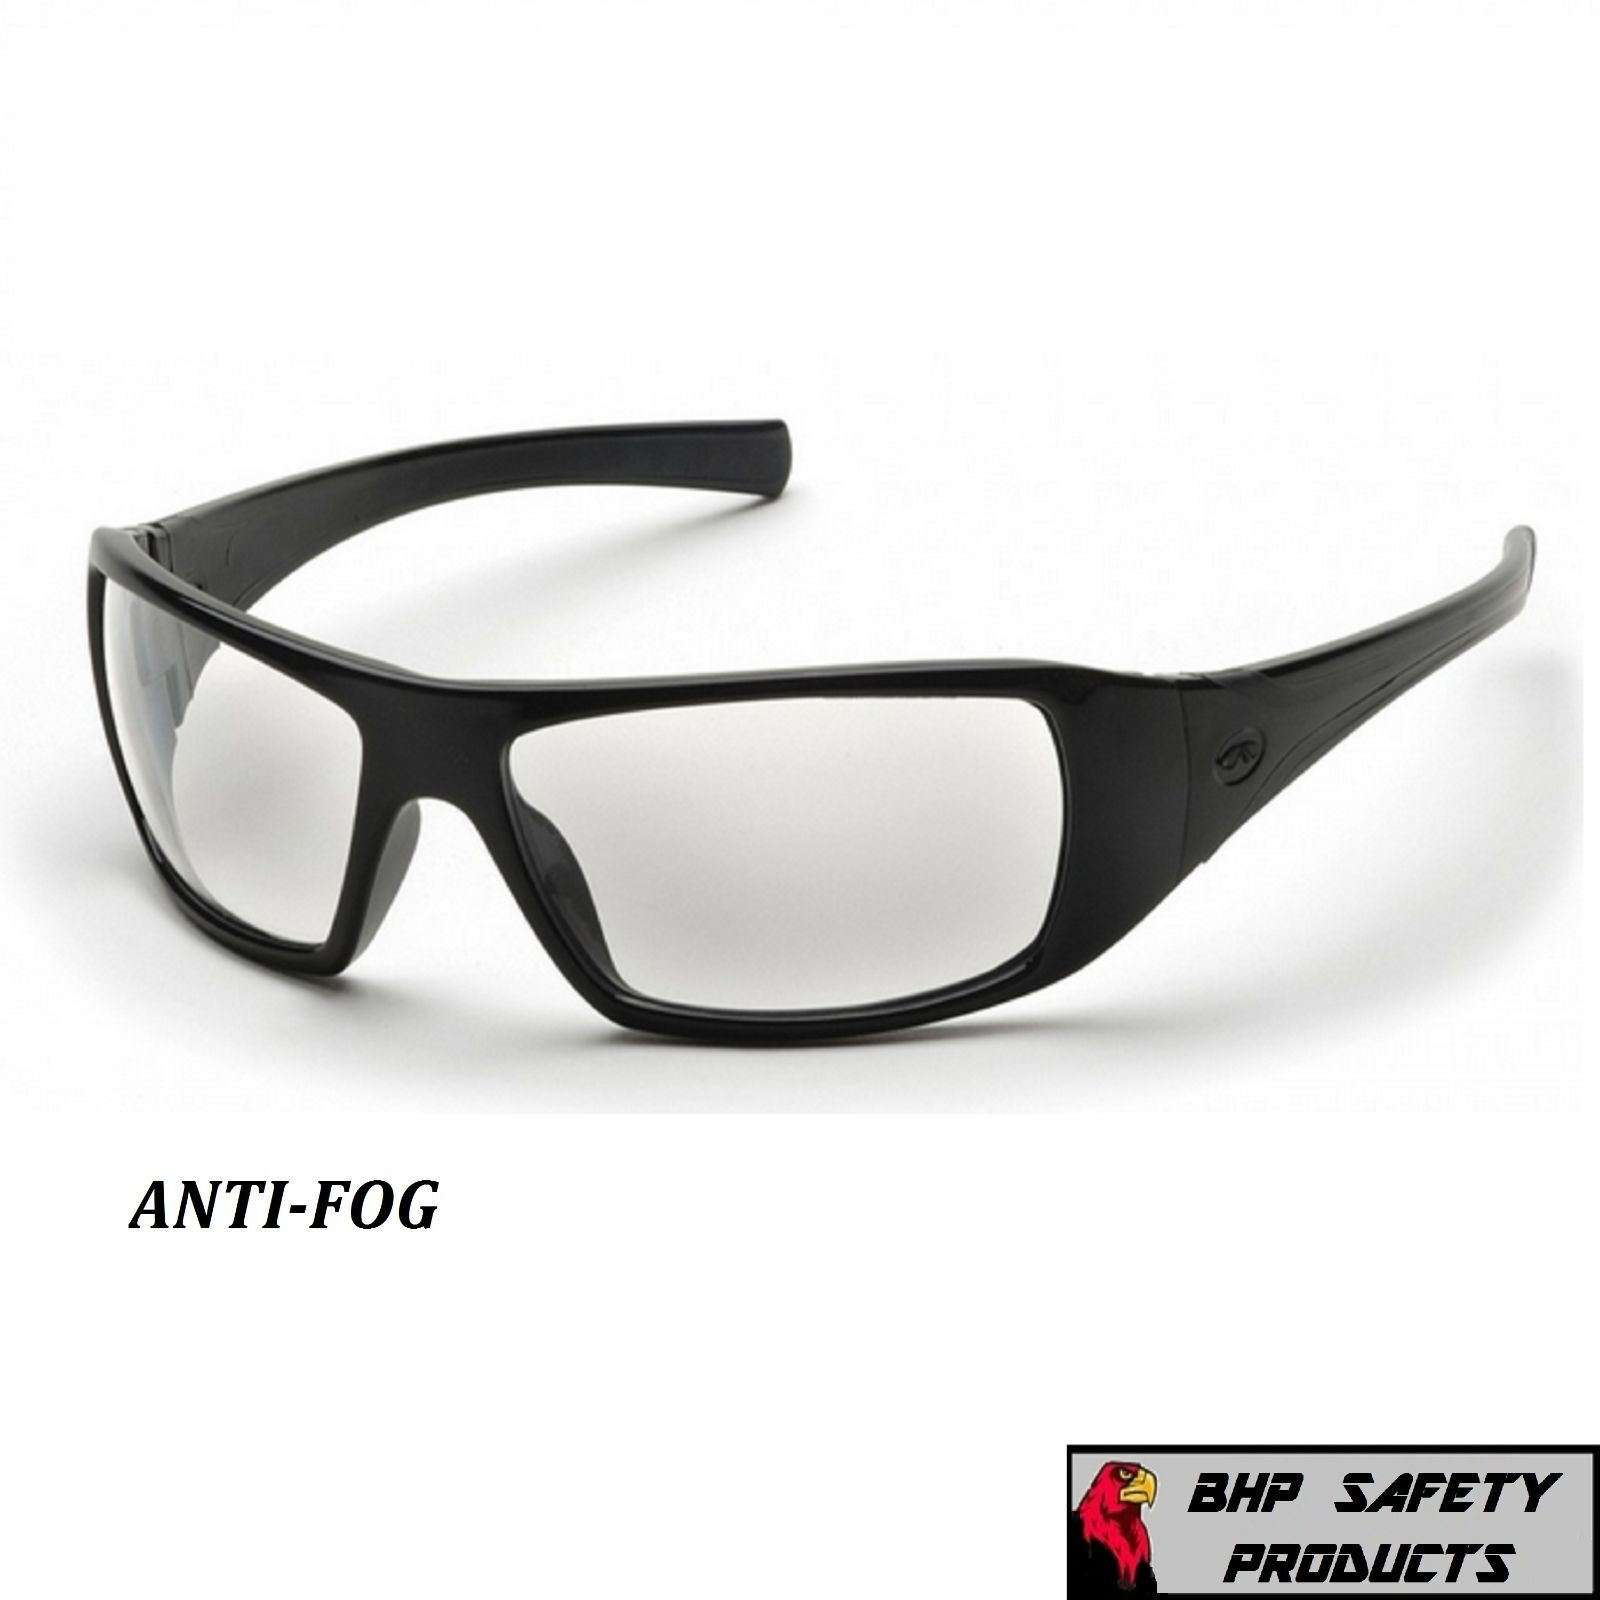 PYRAMEX GOLIATH SAFETY GLASSES MOTORCYCLE SPORT WORK SUNGLASSES Z87+ (1 PAIR) Clear Anti-Fog Lens/ Black Frame SB5610DT